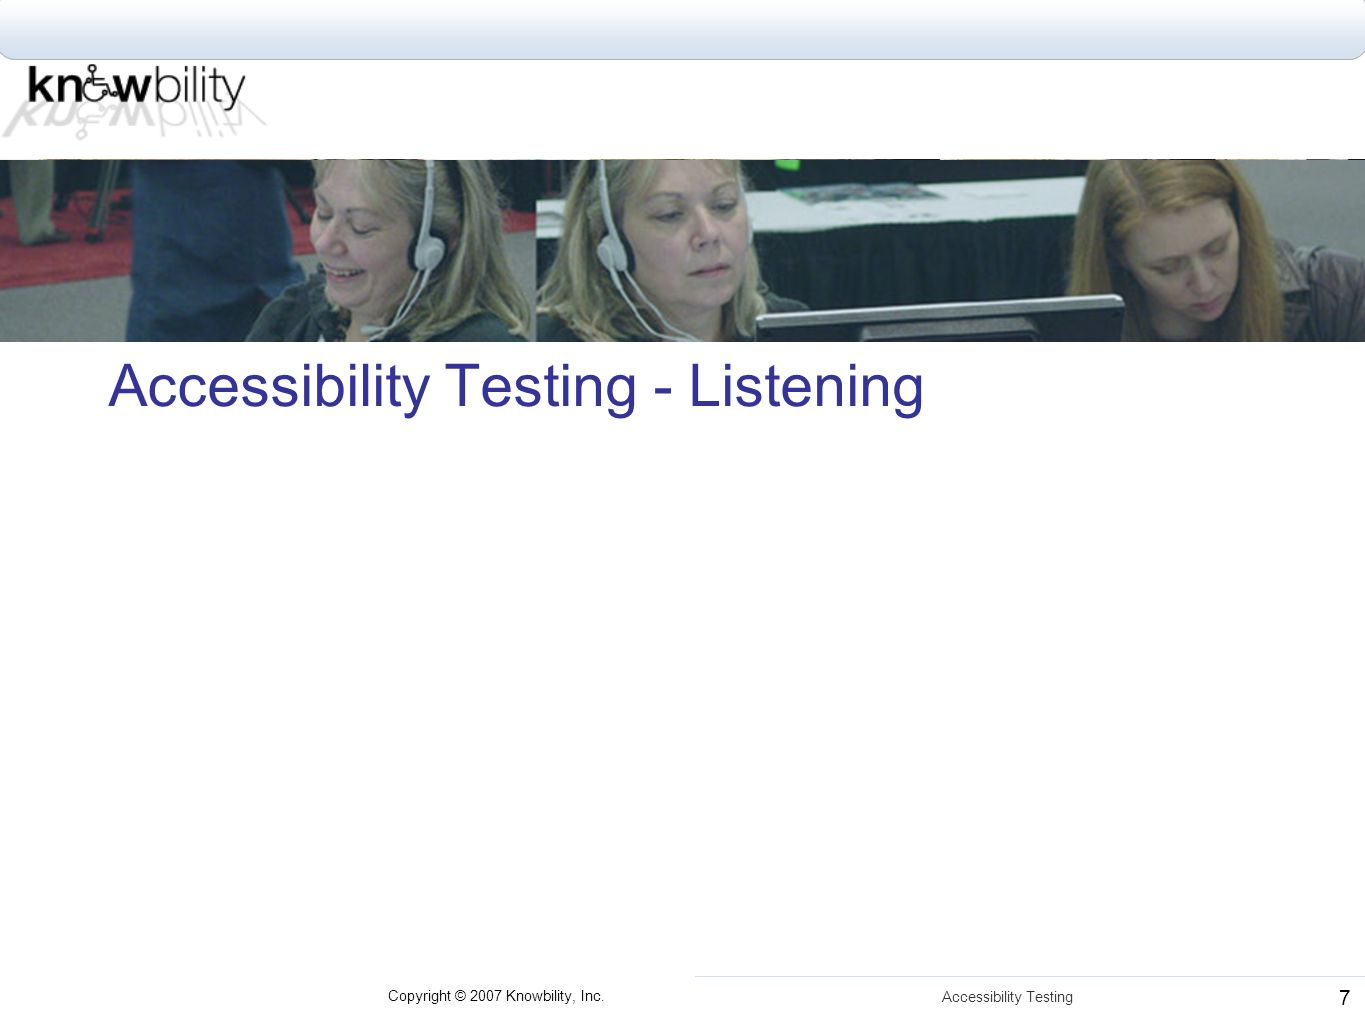 Copyright © 2007 Knowbility, Inc. Accessibility Testing 7 Accessibility Testing - Listening